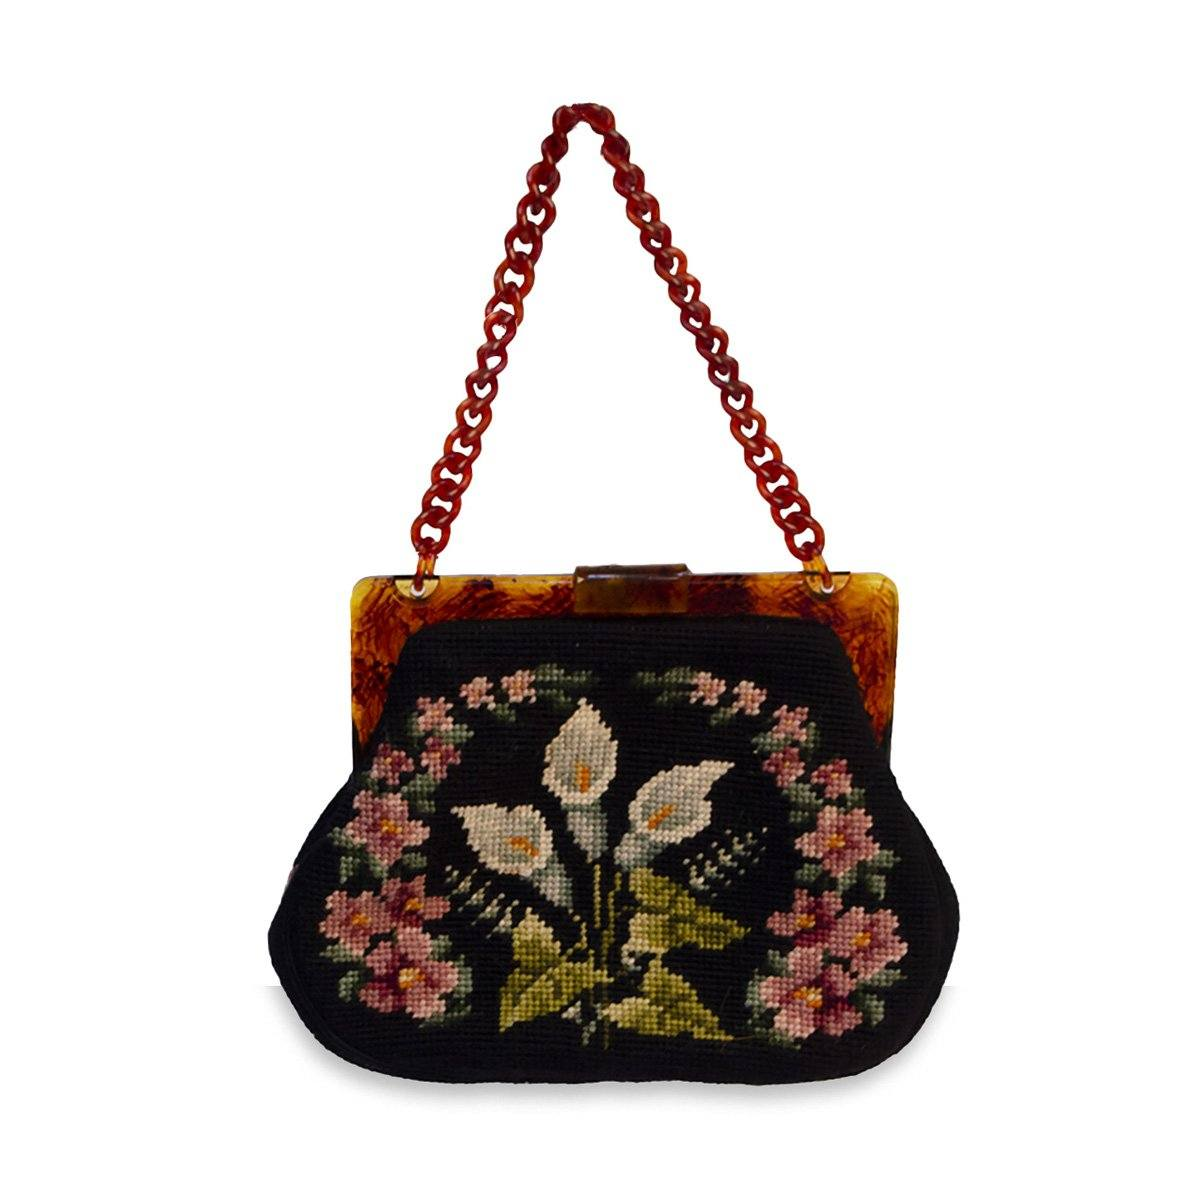 Maud Hundley Needlepoint purse 2, Black, Pink, Blue, White Floral